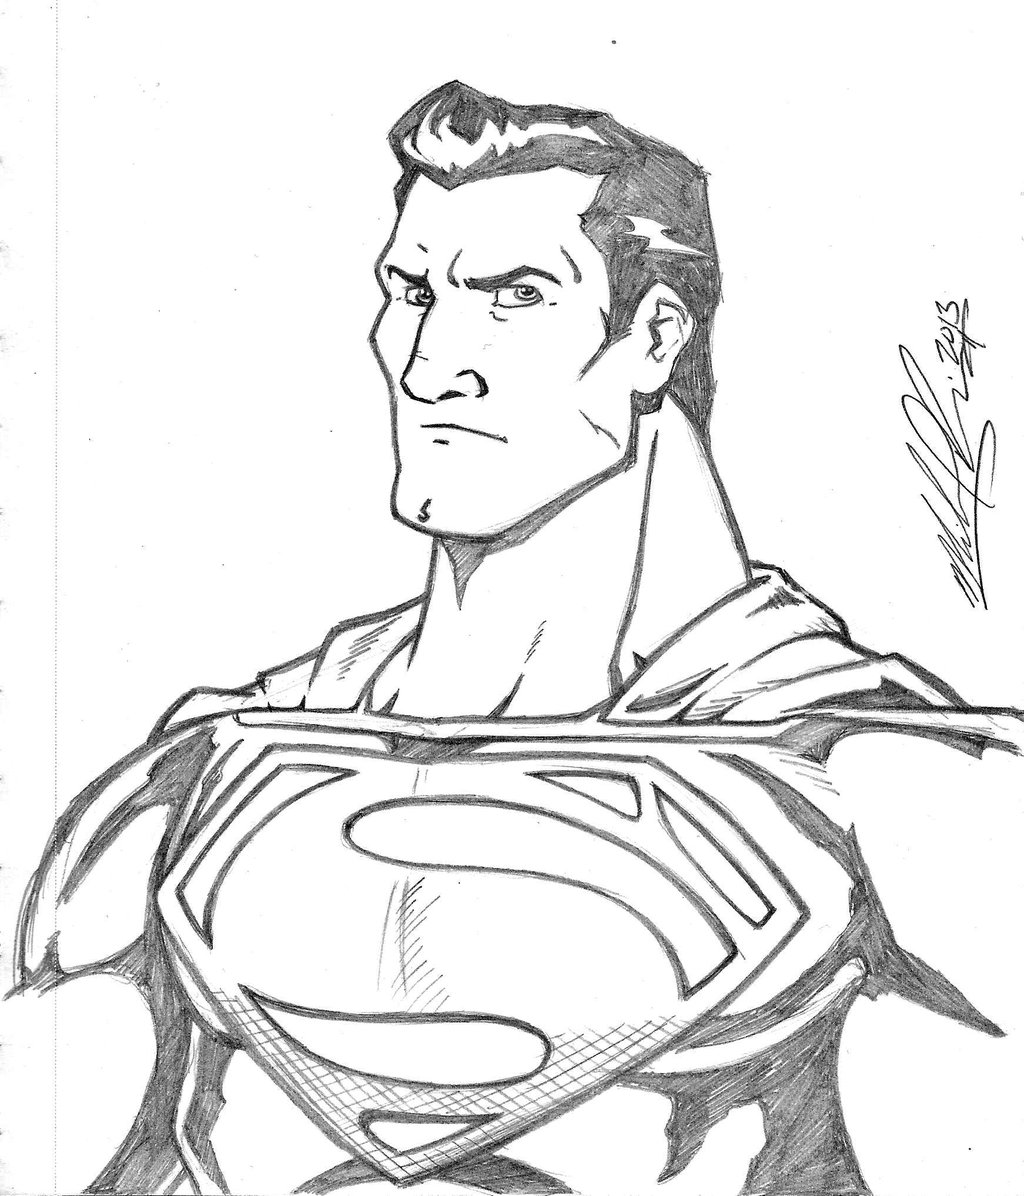 1024x1196 Man of Steel pencil sketch by mikereisner on DeviantArt